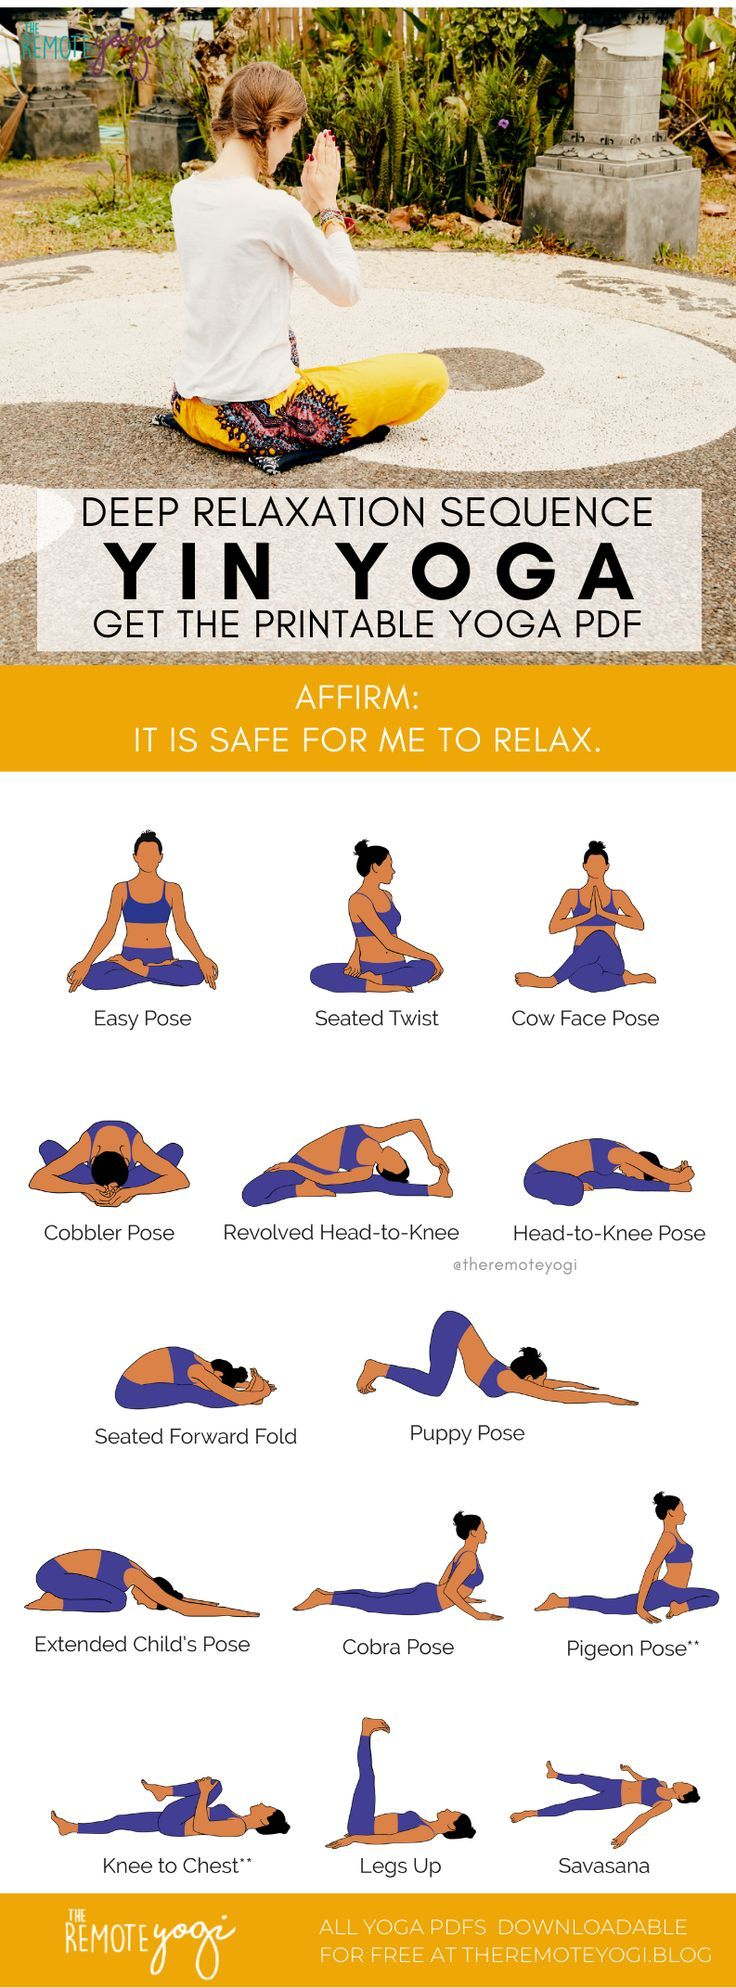 Yin Yoga Sequence For Deep Relaxation In 2020 Yin Yoga Yin Yoga Sequence Deep Relaxation